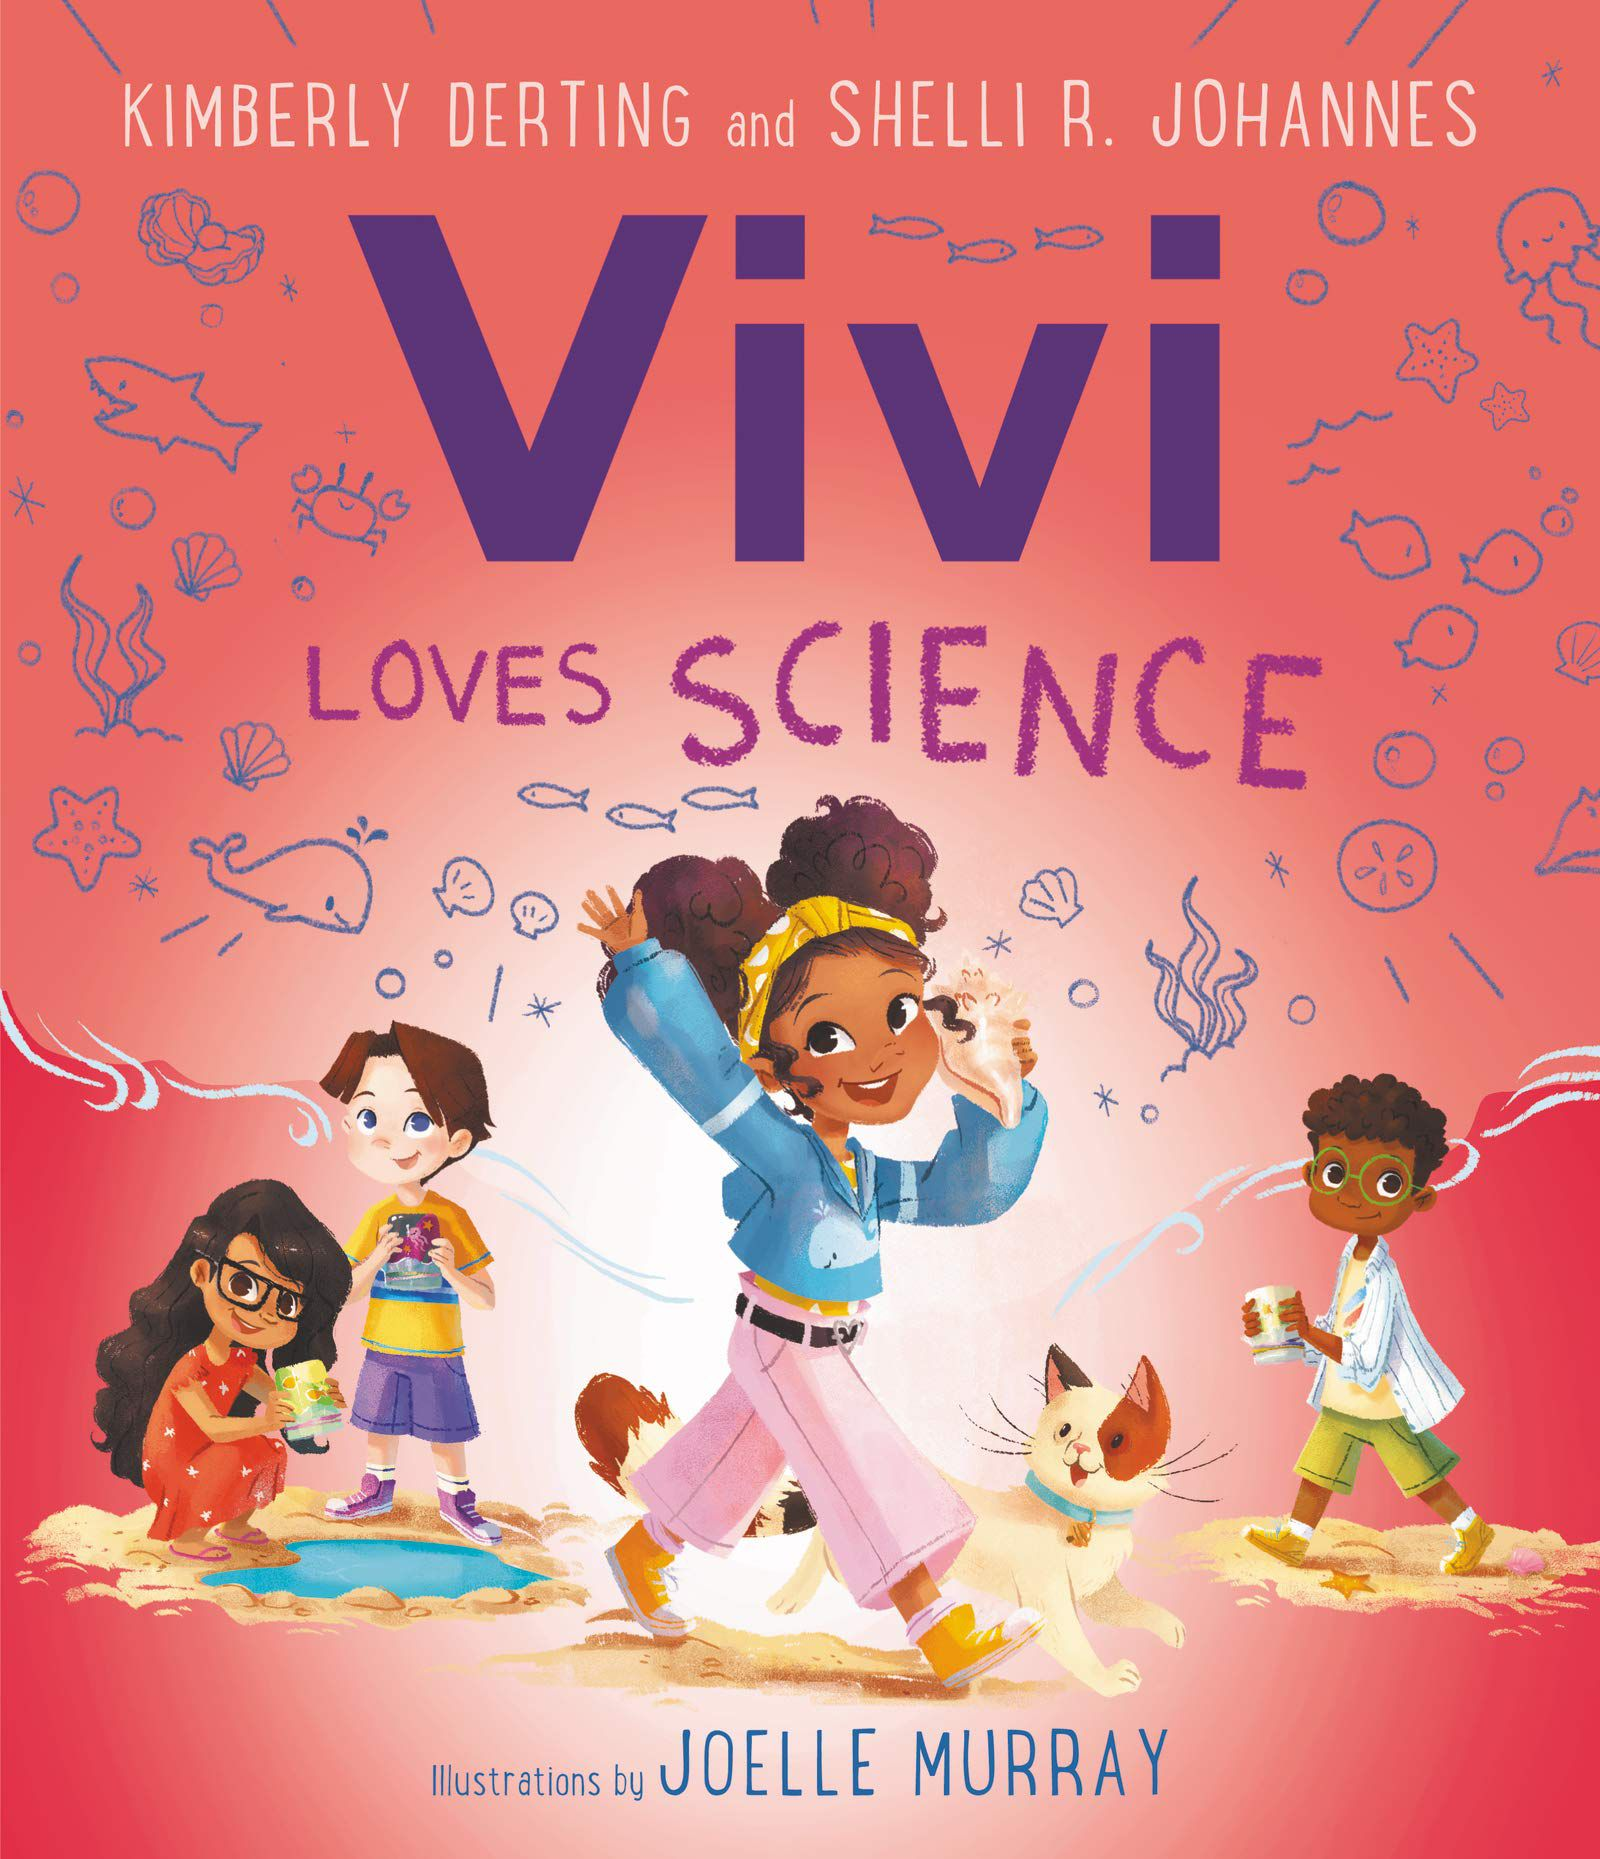 cover of vivi loves science by derting